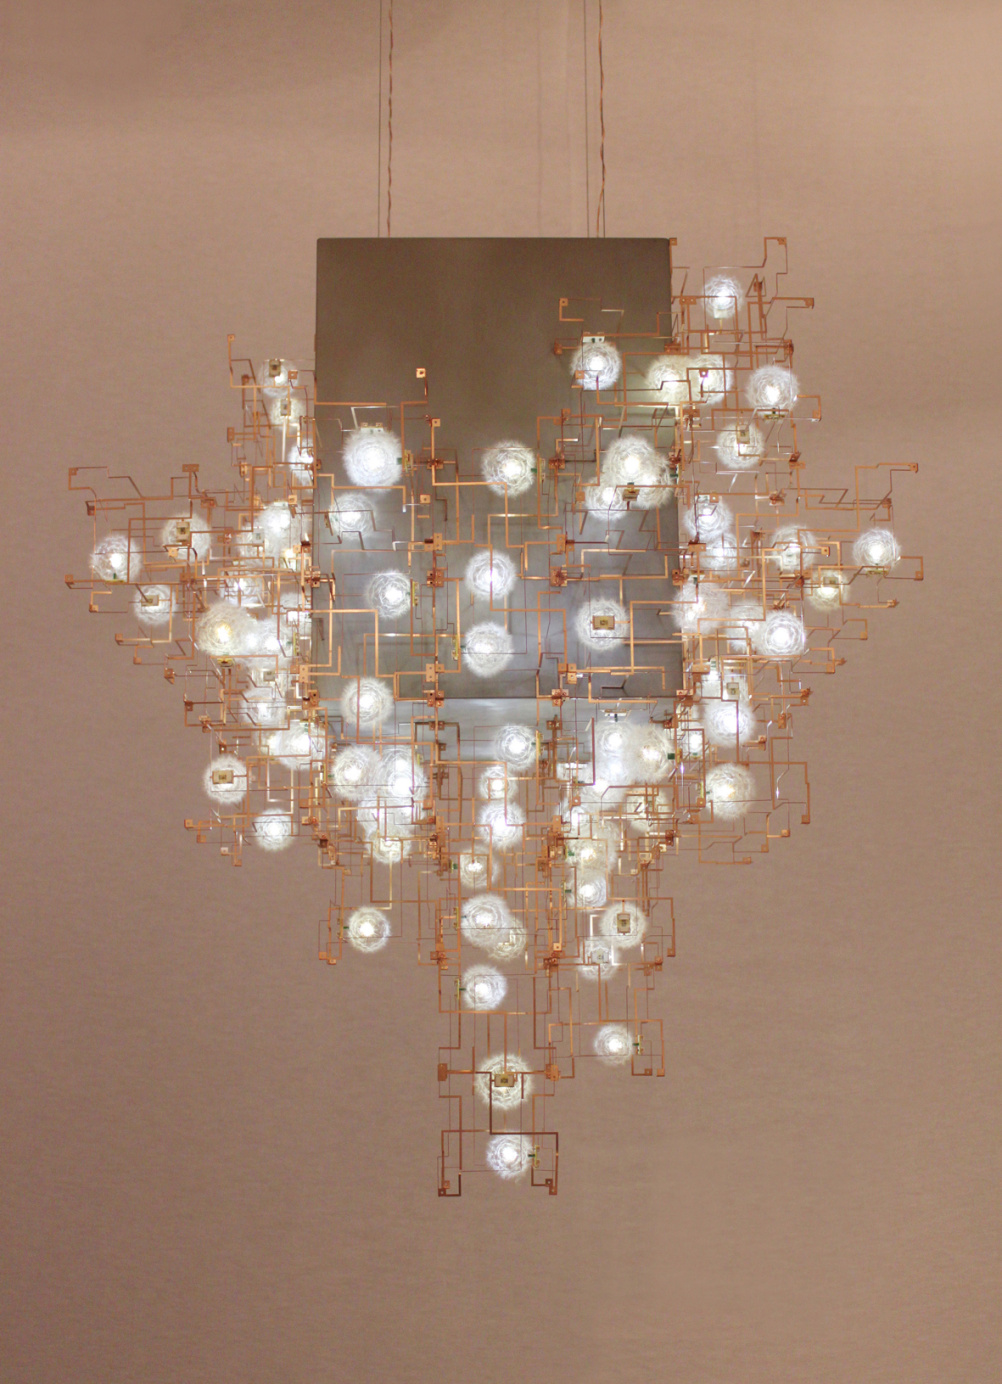 Fragile Future 3 Concrete Chandelier. Studio Drift, 2011